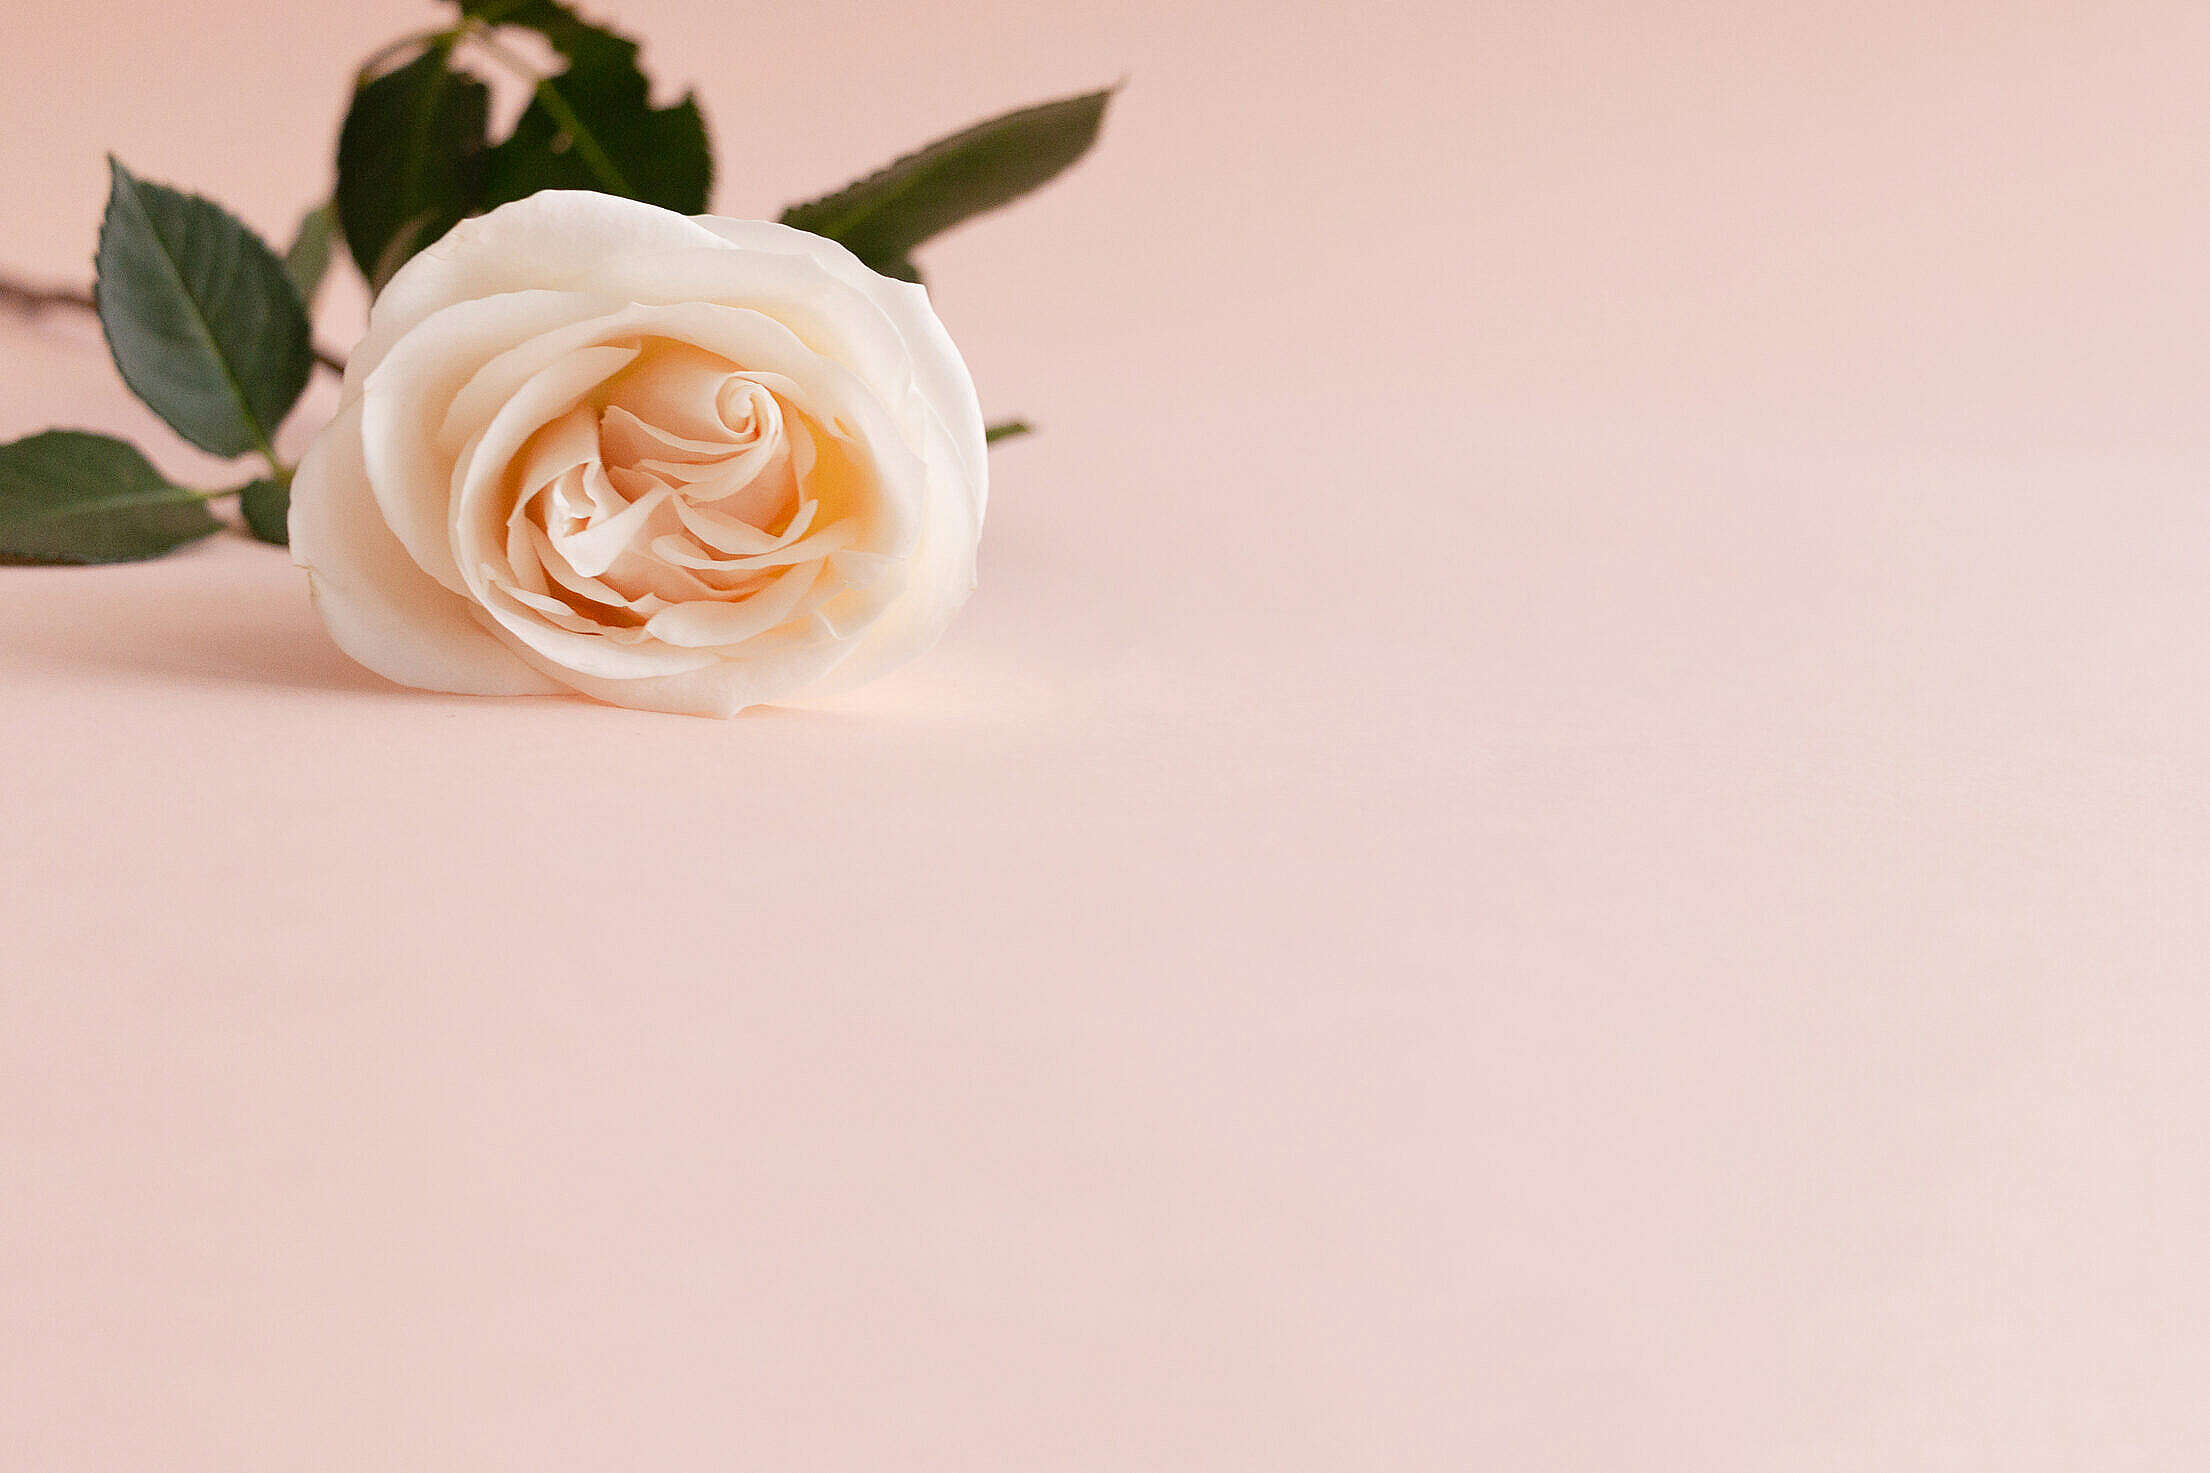 Orange Rose with Place for Text Free Stock Photo